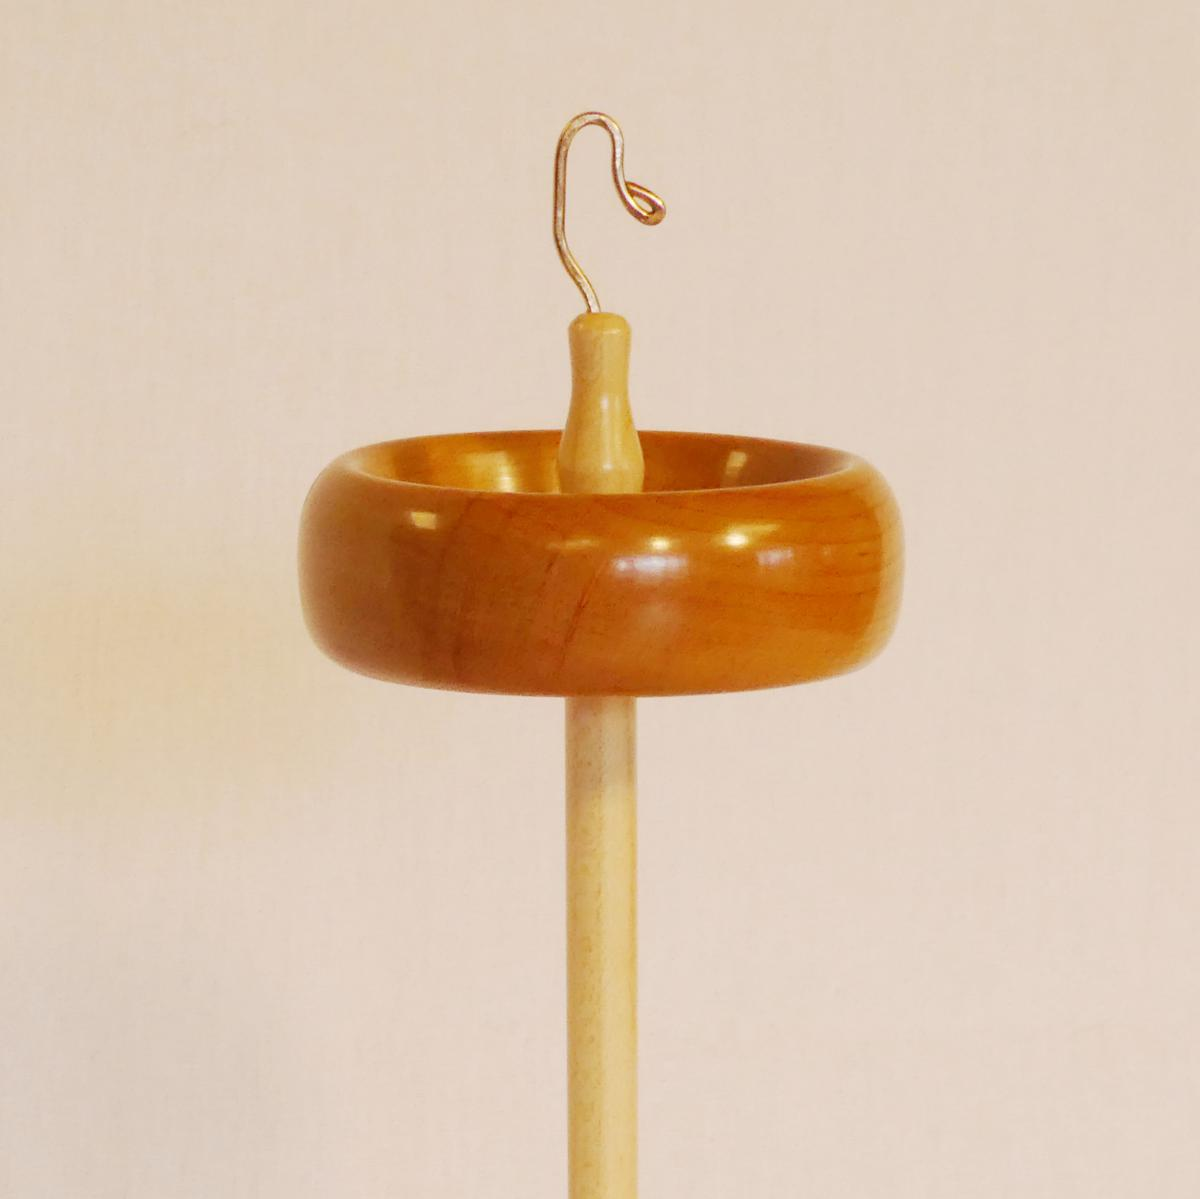 Trunk size top whorl drop spindle in cherry on maple handmade by Cynthia D. Haney signed number 368